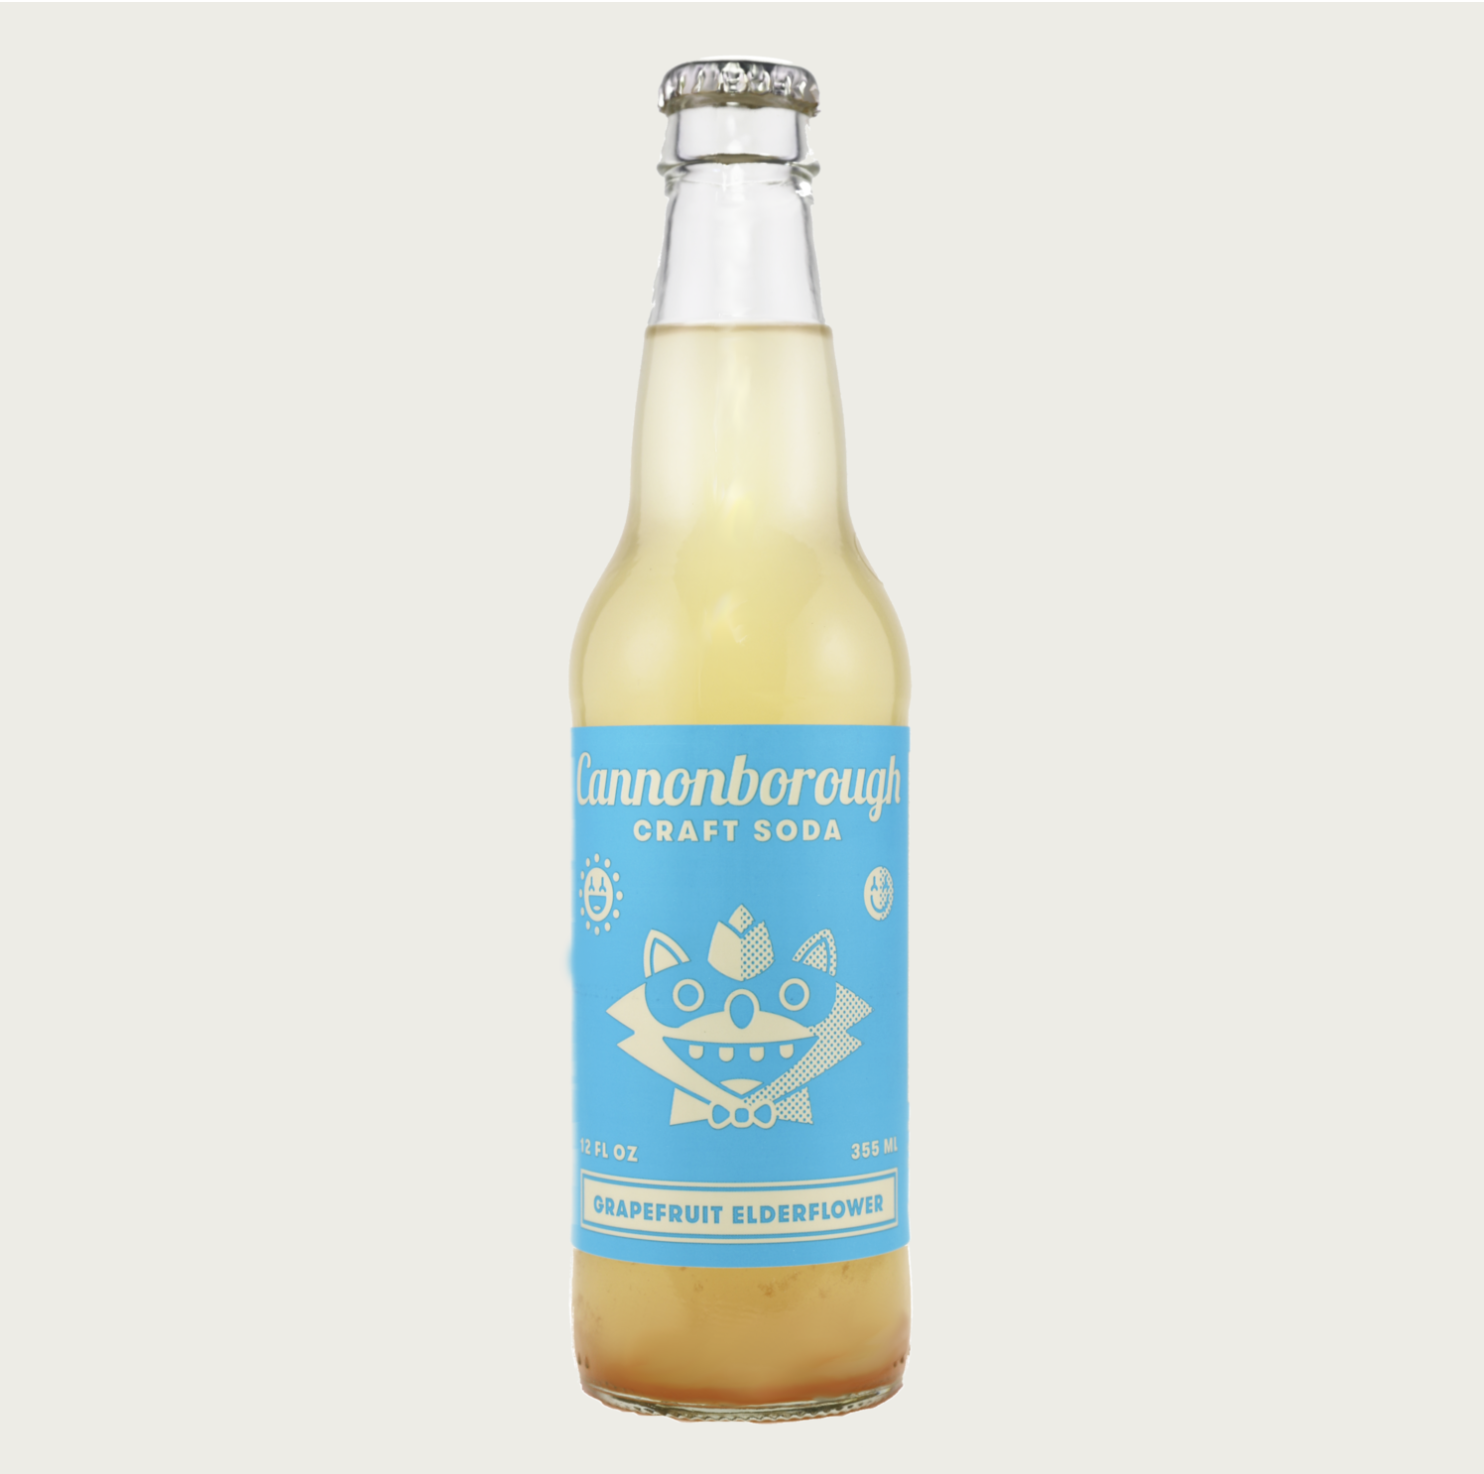 Craft Soda by Cannonborough Beverage Co